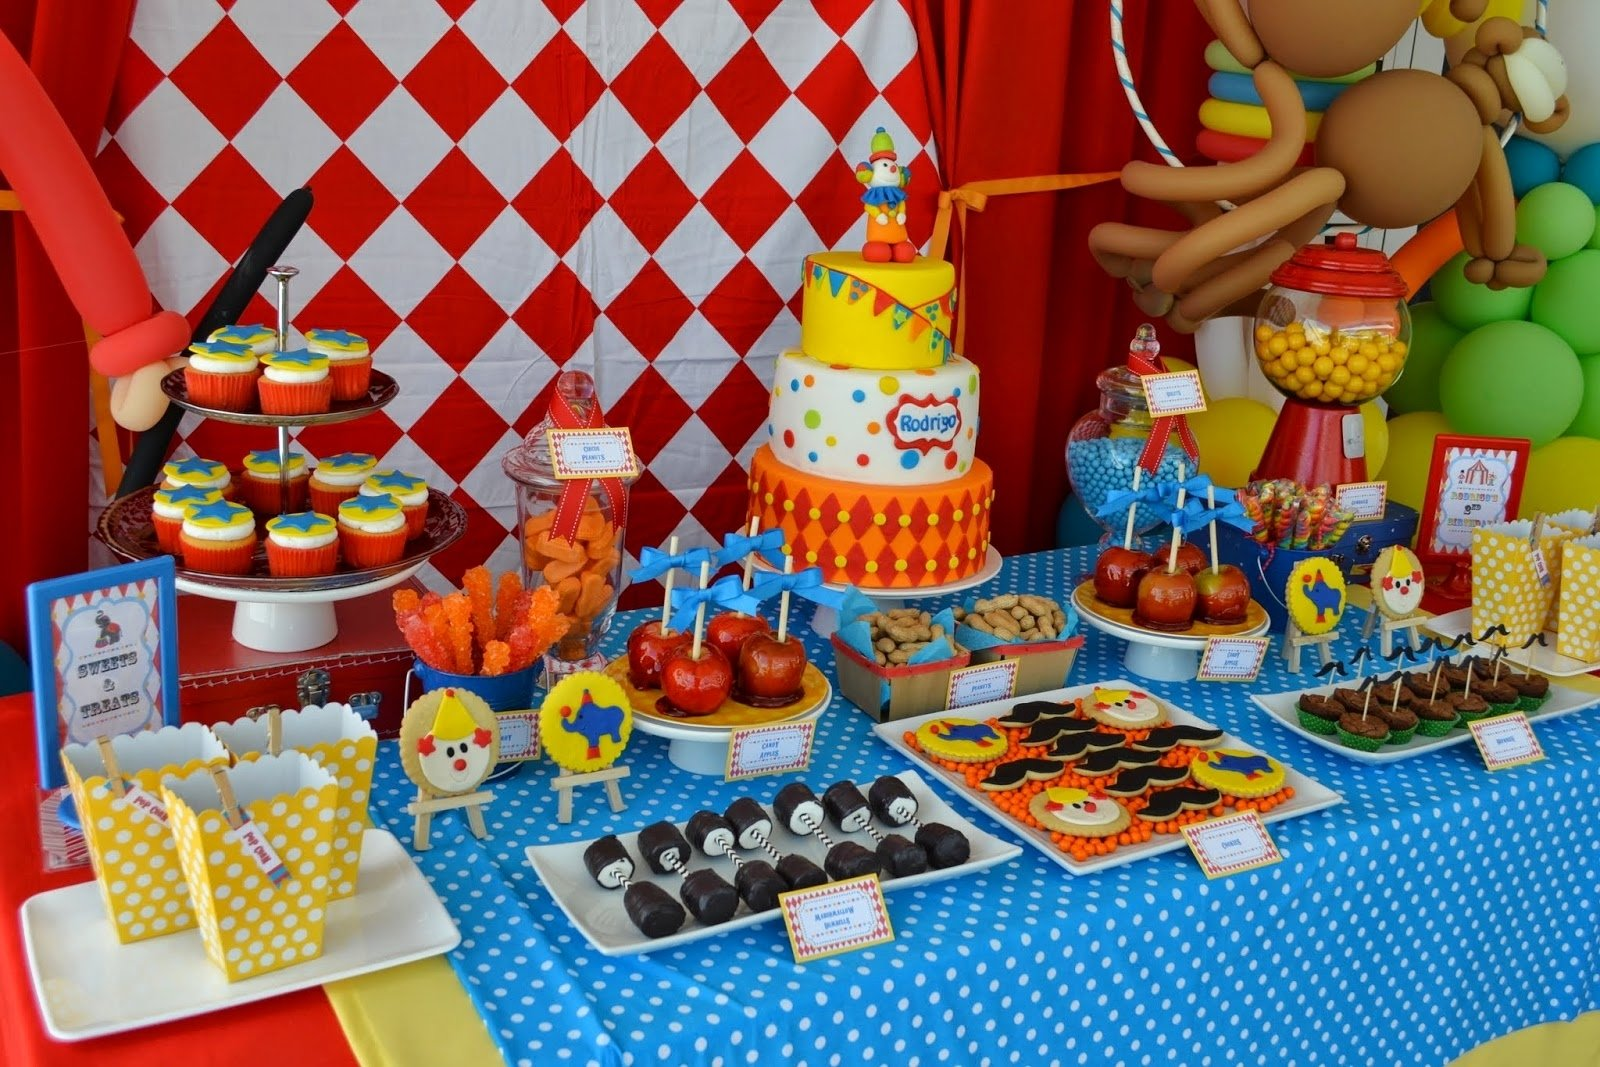 10 Cute Birthday Party Ideas For 5 Year Old Themes 3